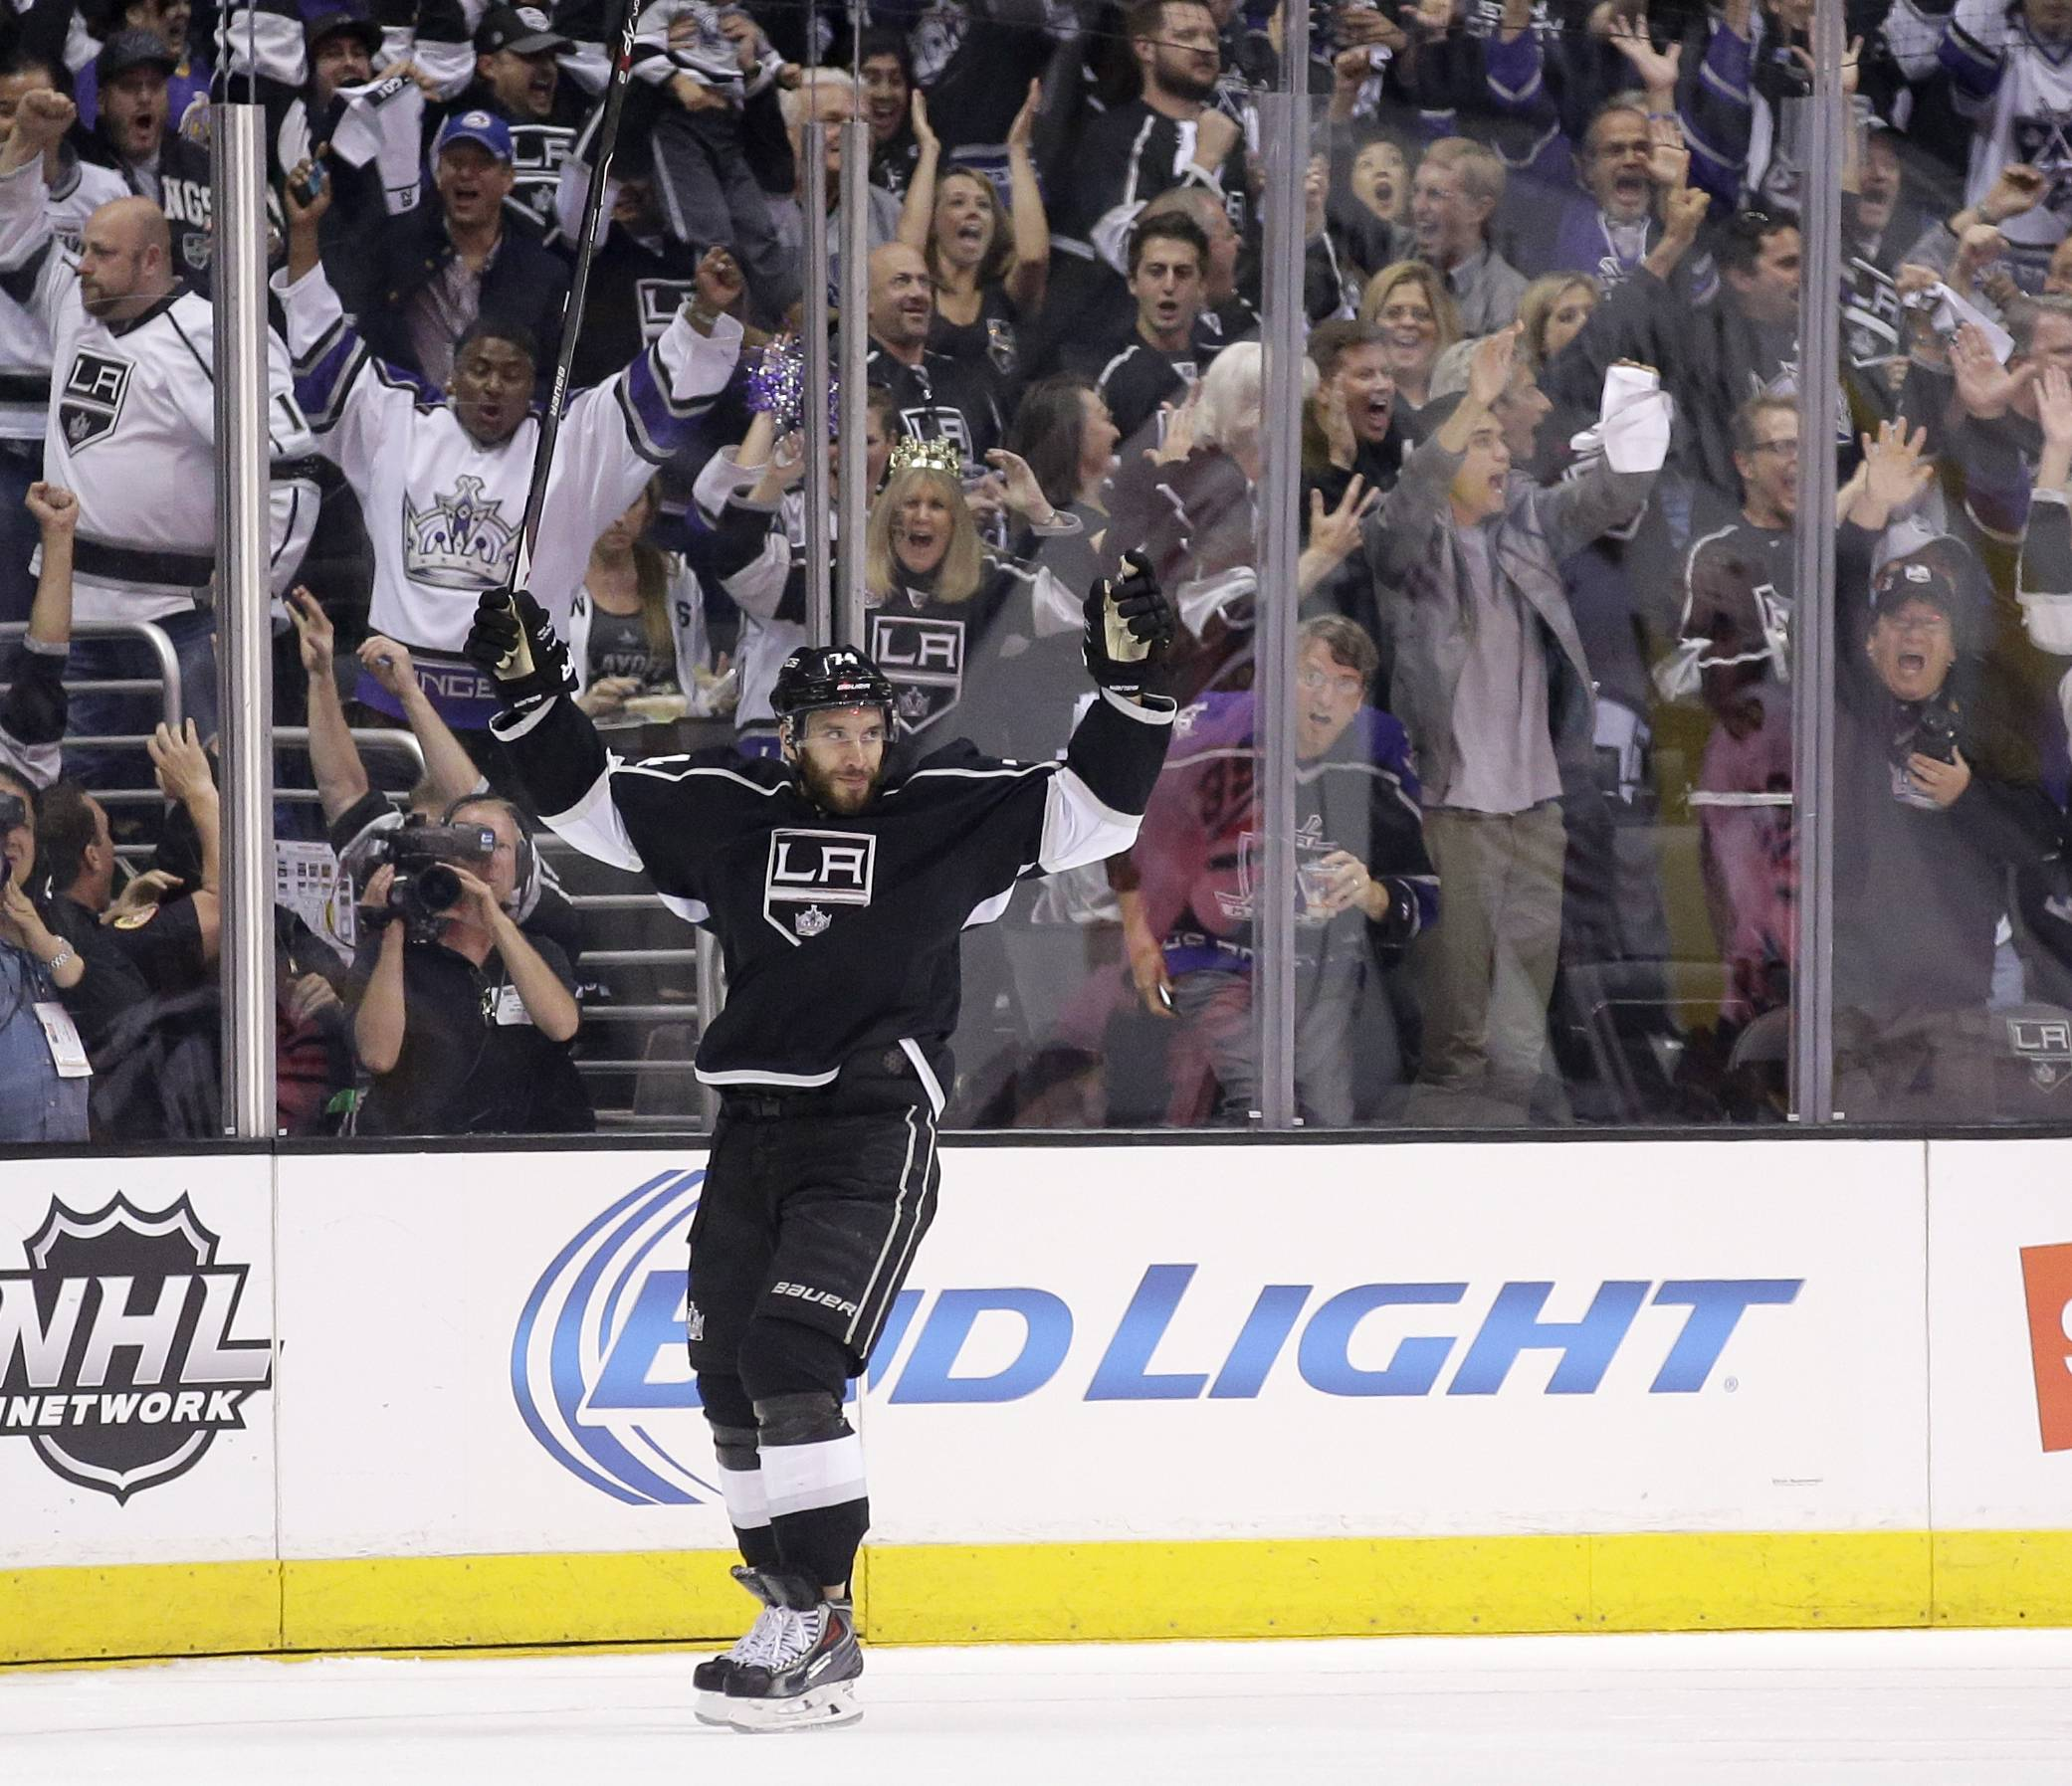 Los Angeles Kings left wing Dwight King celebrates his goal against the Chicago Blackhaw during first period of Game 6 of the Western Conference finals of the NHL hockey Stanley Cup playoffs in Los Angeles on Friday, May 30, 2014.